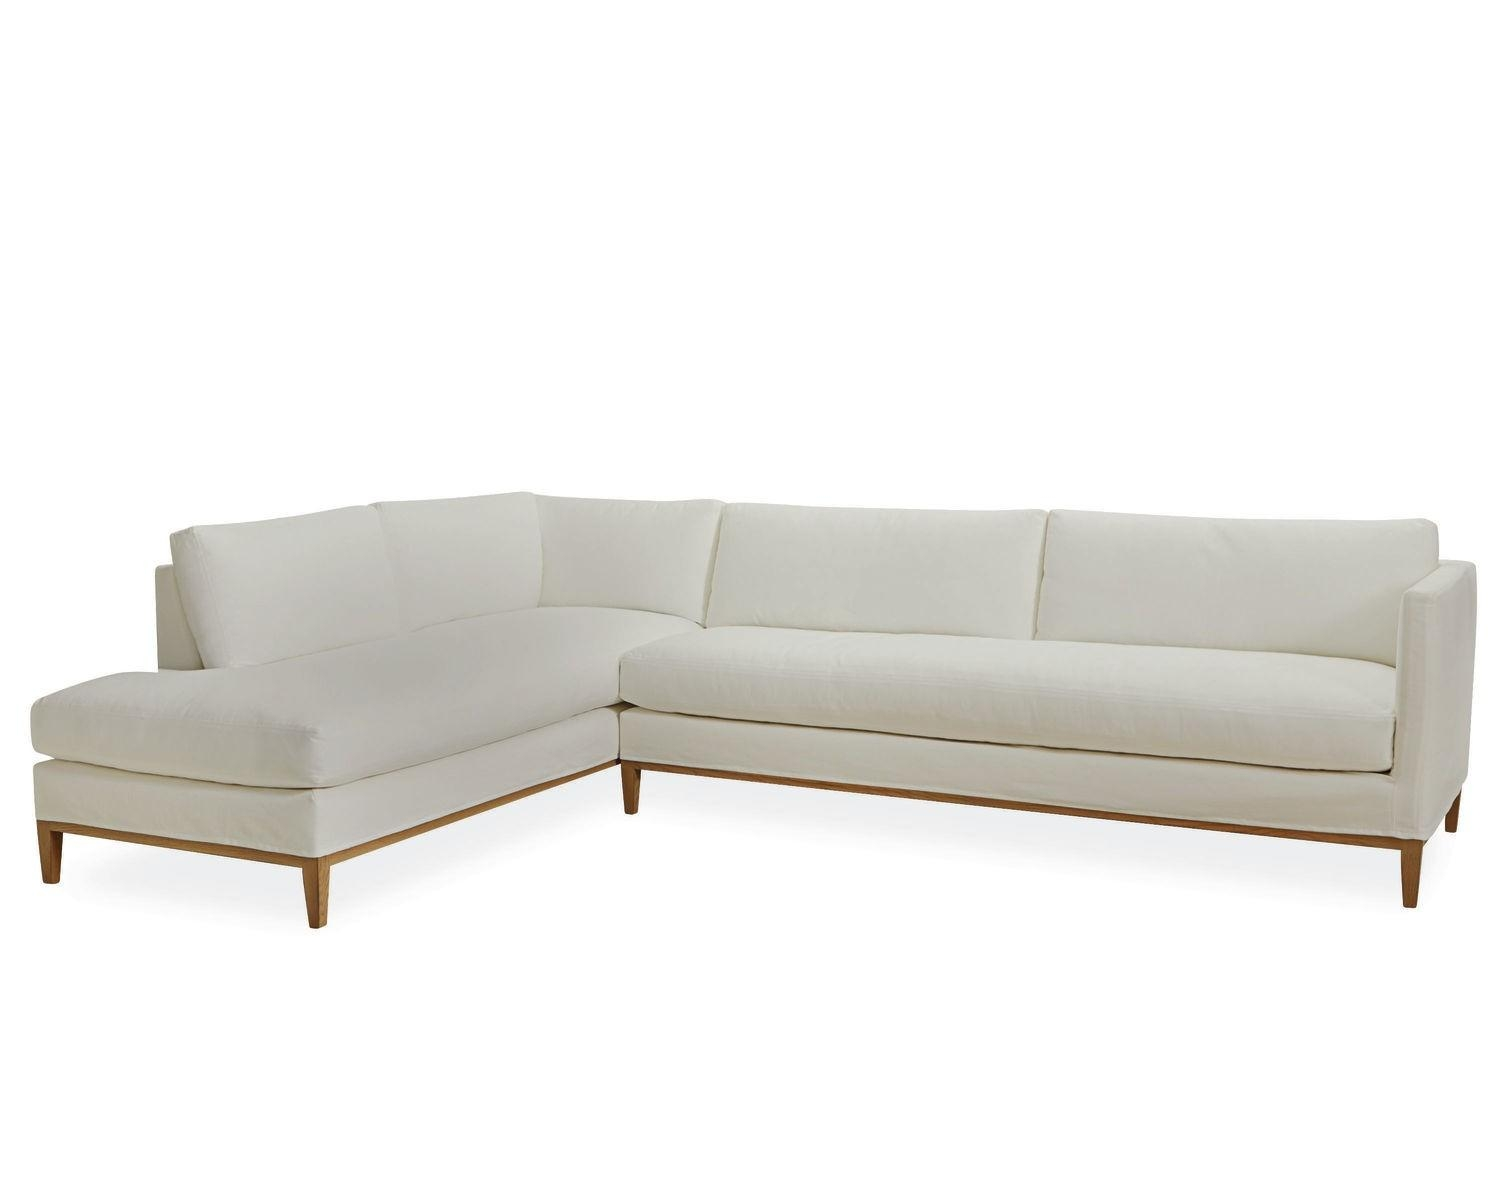 American Furniture | Palm Springs Chaise Sectional | Lee Industries With Lee Industries Sectional Sofa (Image 7 of 20)